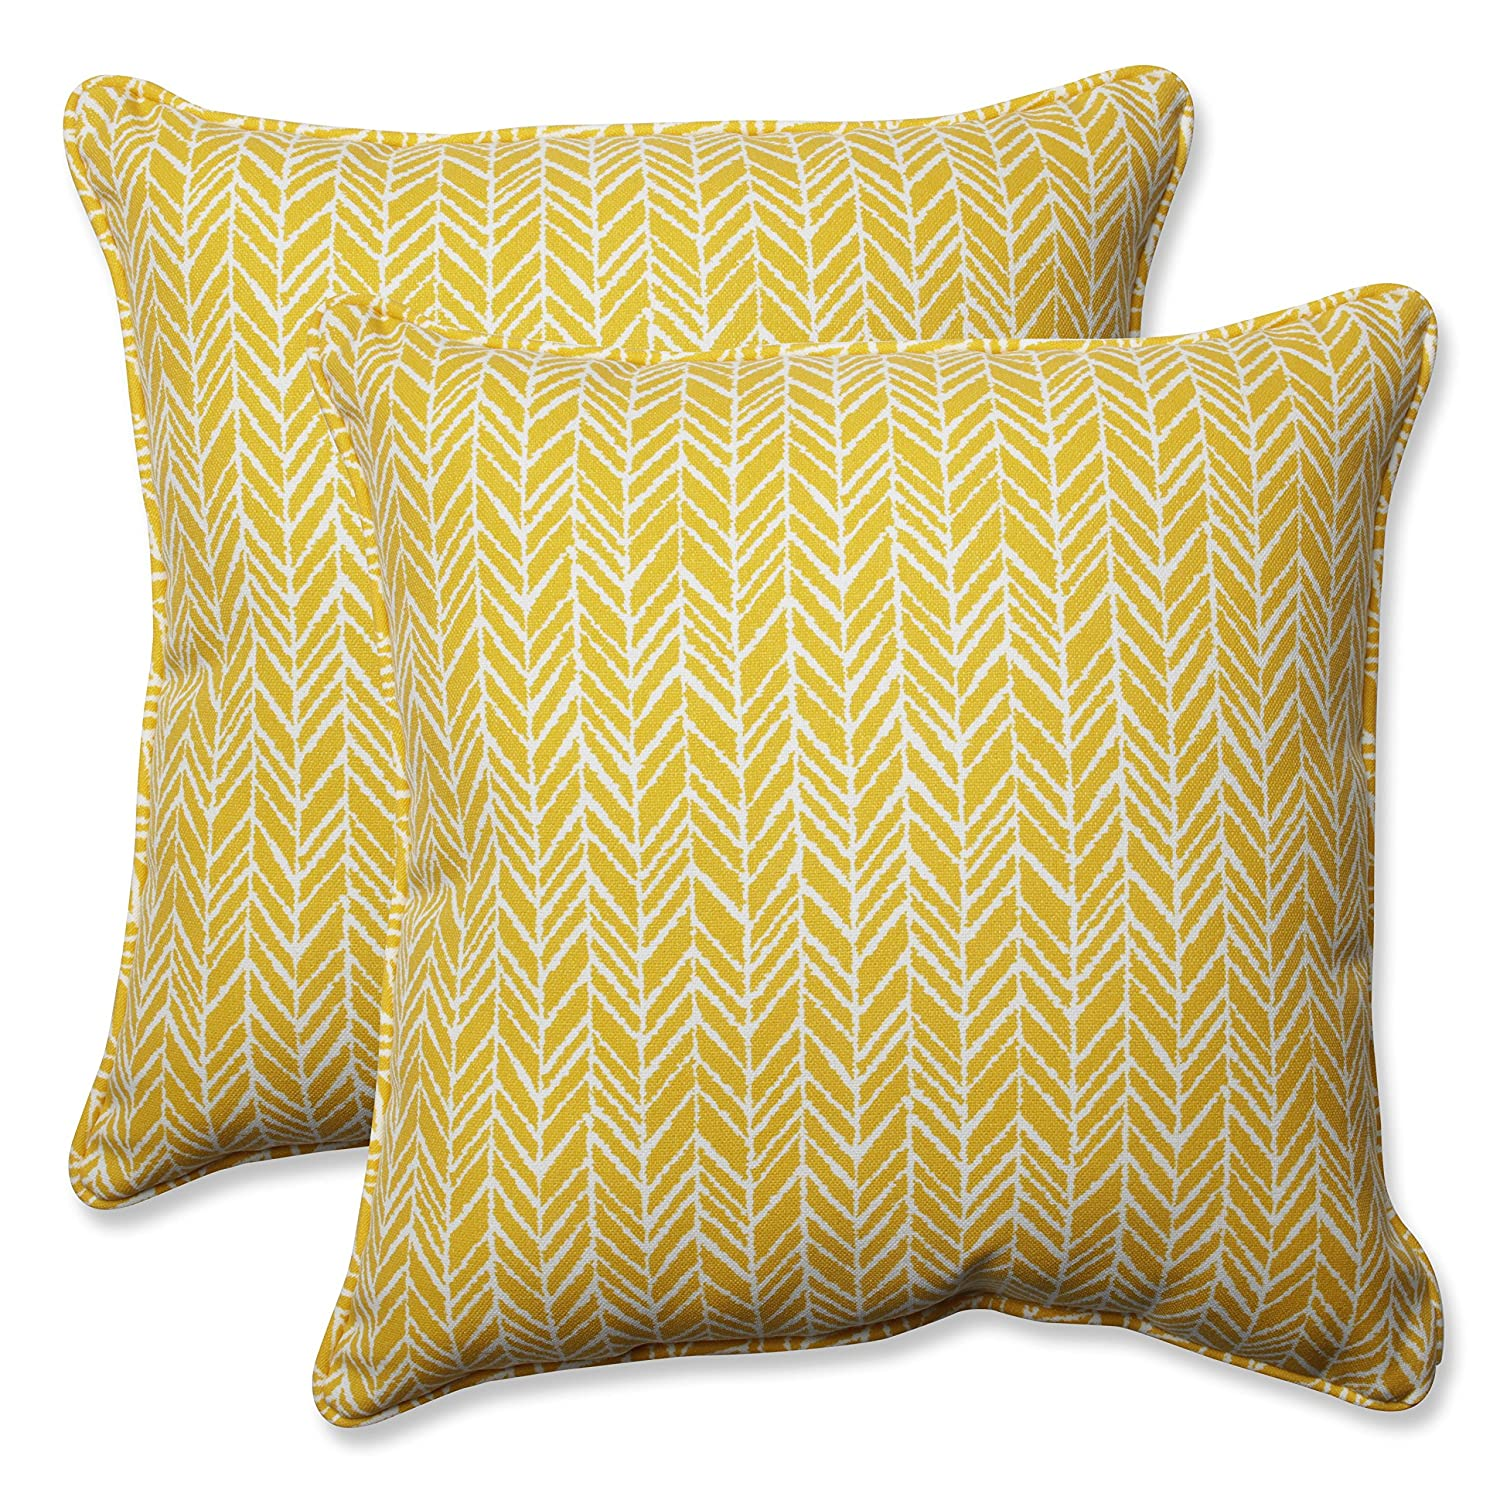 Pillow Perfect Outdoor Indoor Herringbone Egg Yolk 18.5-inch Throw Pillow Set o, 2 Piece